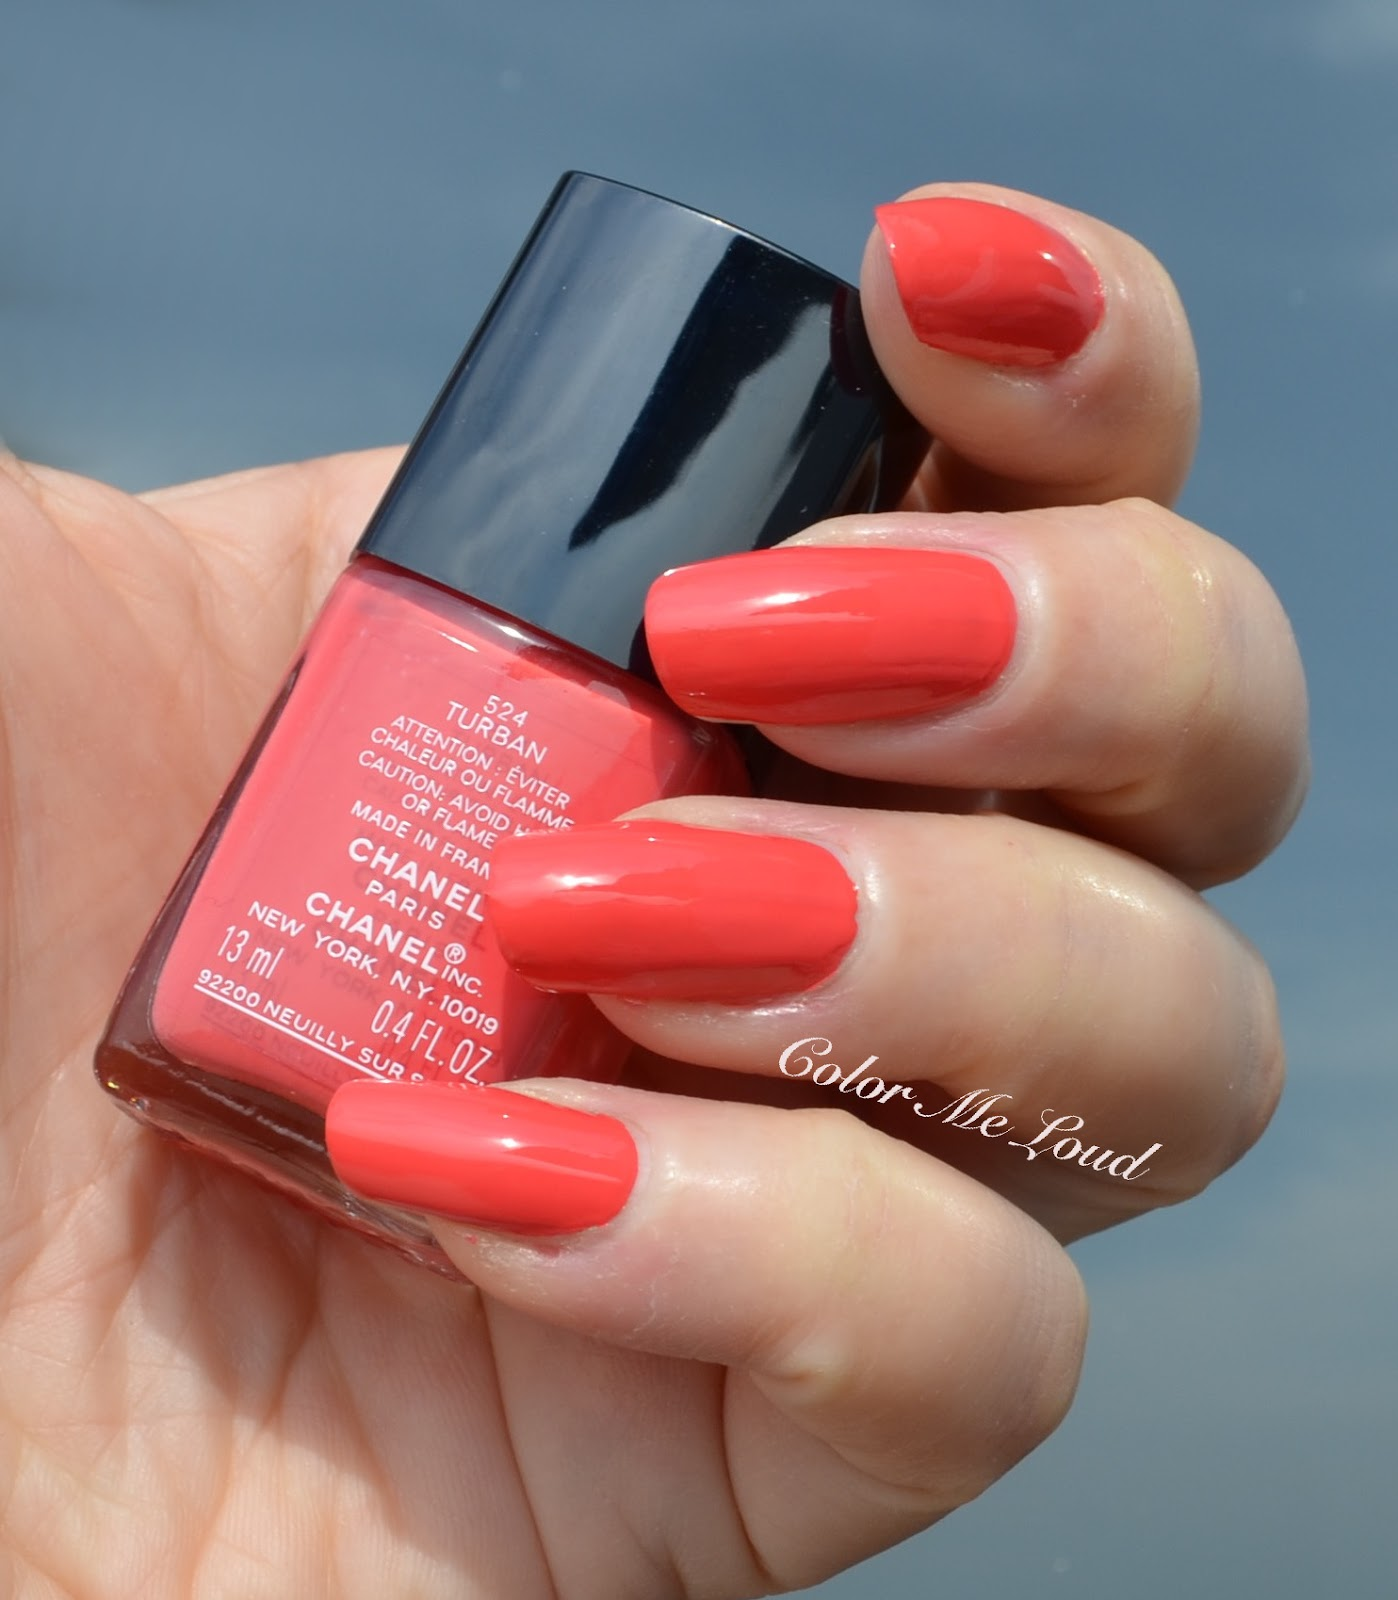 Chanel Dans La Lumière L\'Été Summer Collection Nail Polishes, Review ...